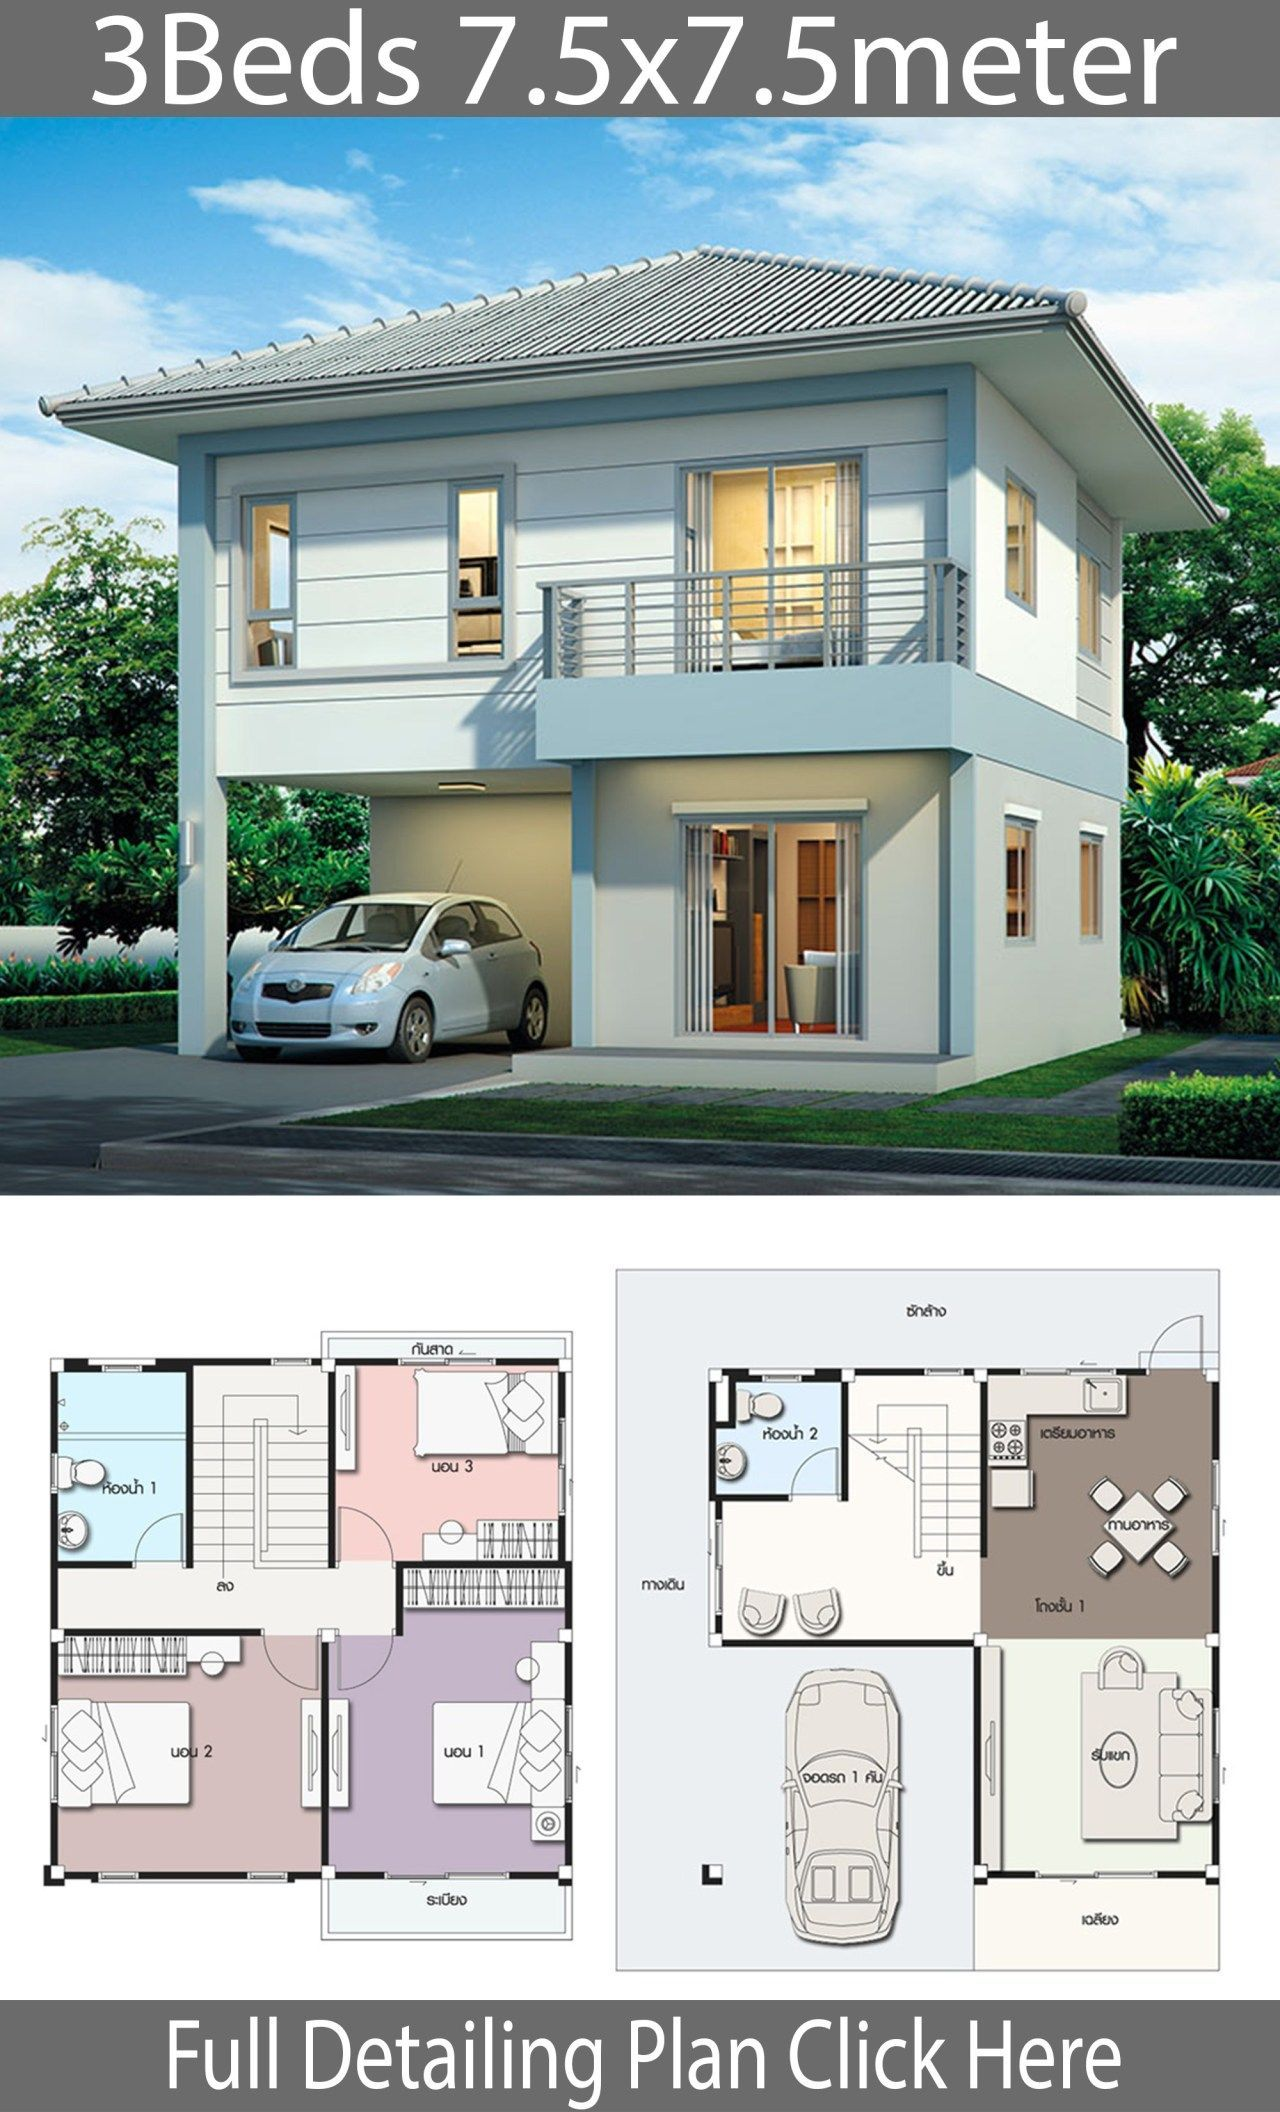 Modern House Design Plan 7 5x7 5m With 3beds Home Ideas 3beds 75x75m Design Modern House Plans Modern House Design House Front Design